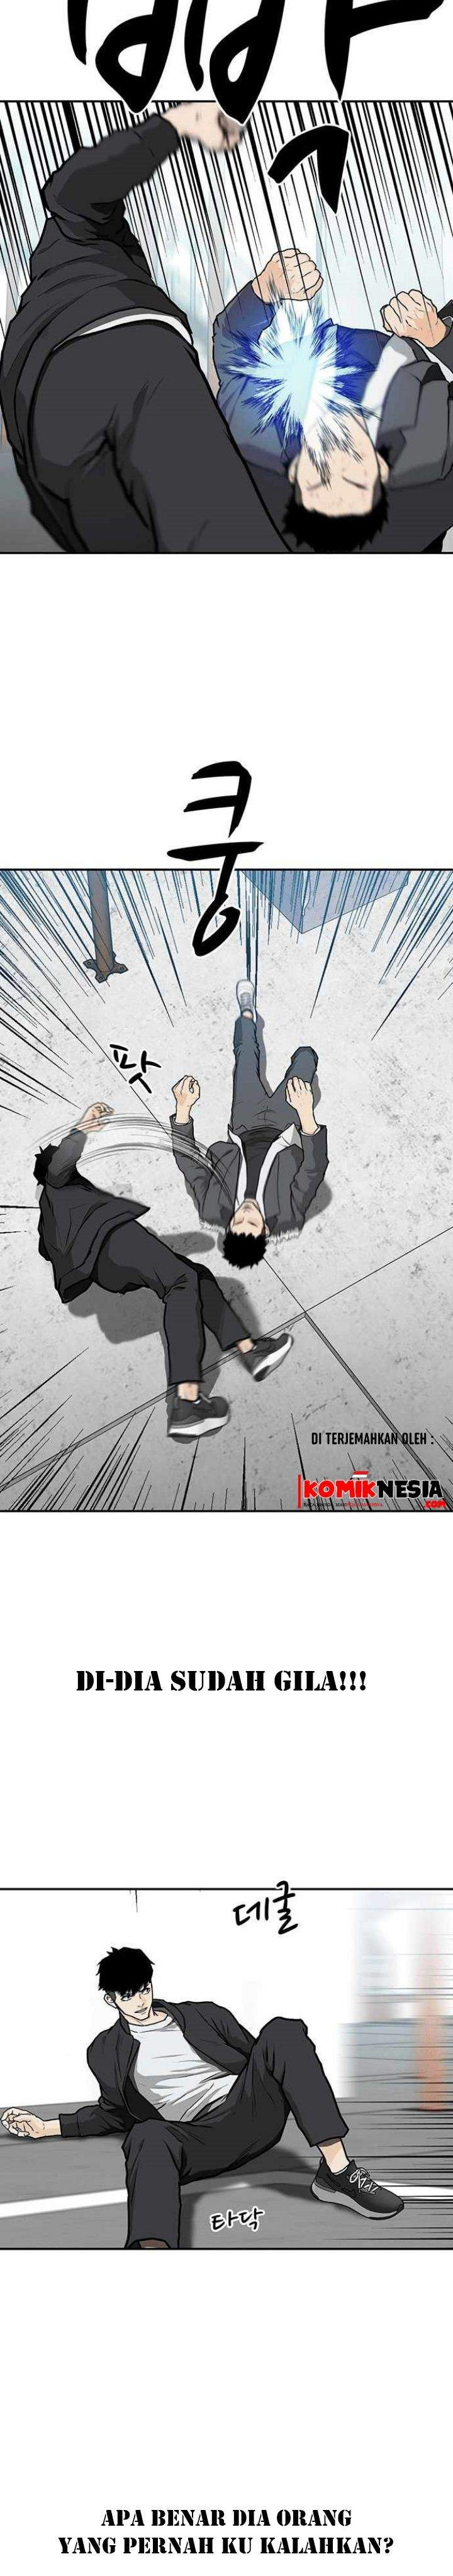 Fight Hard Chapter 04